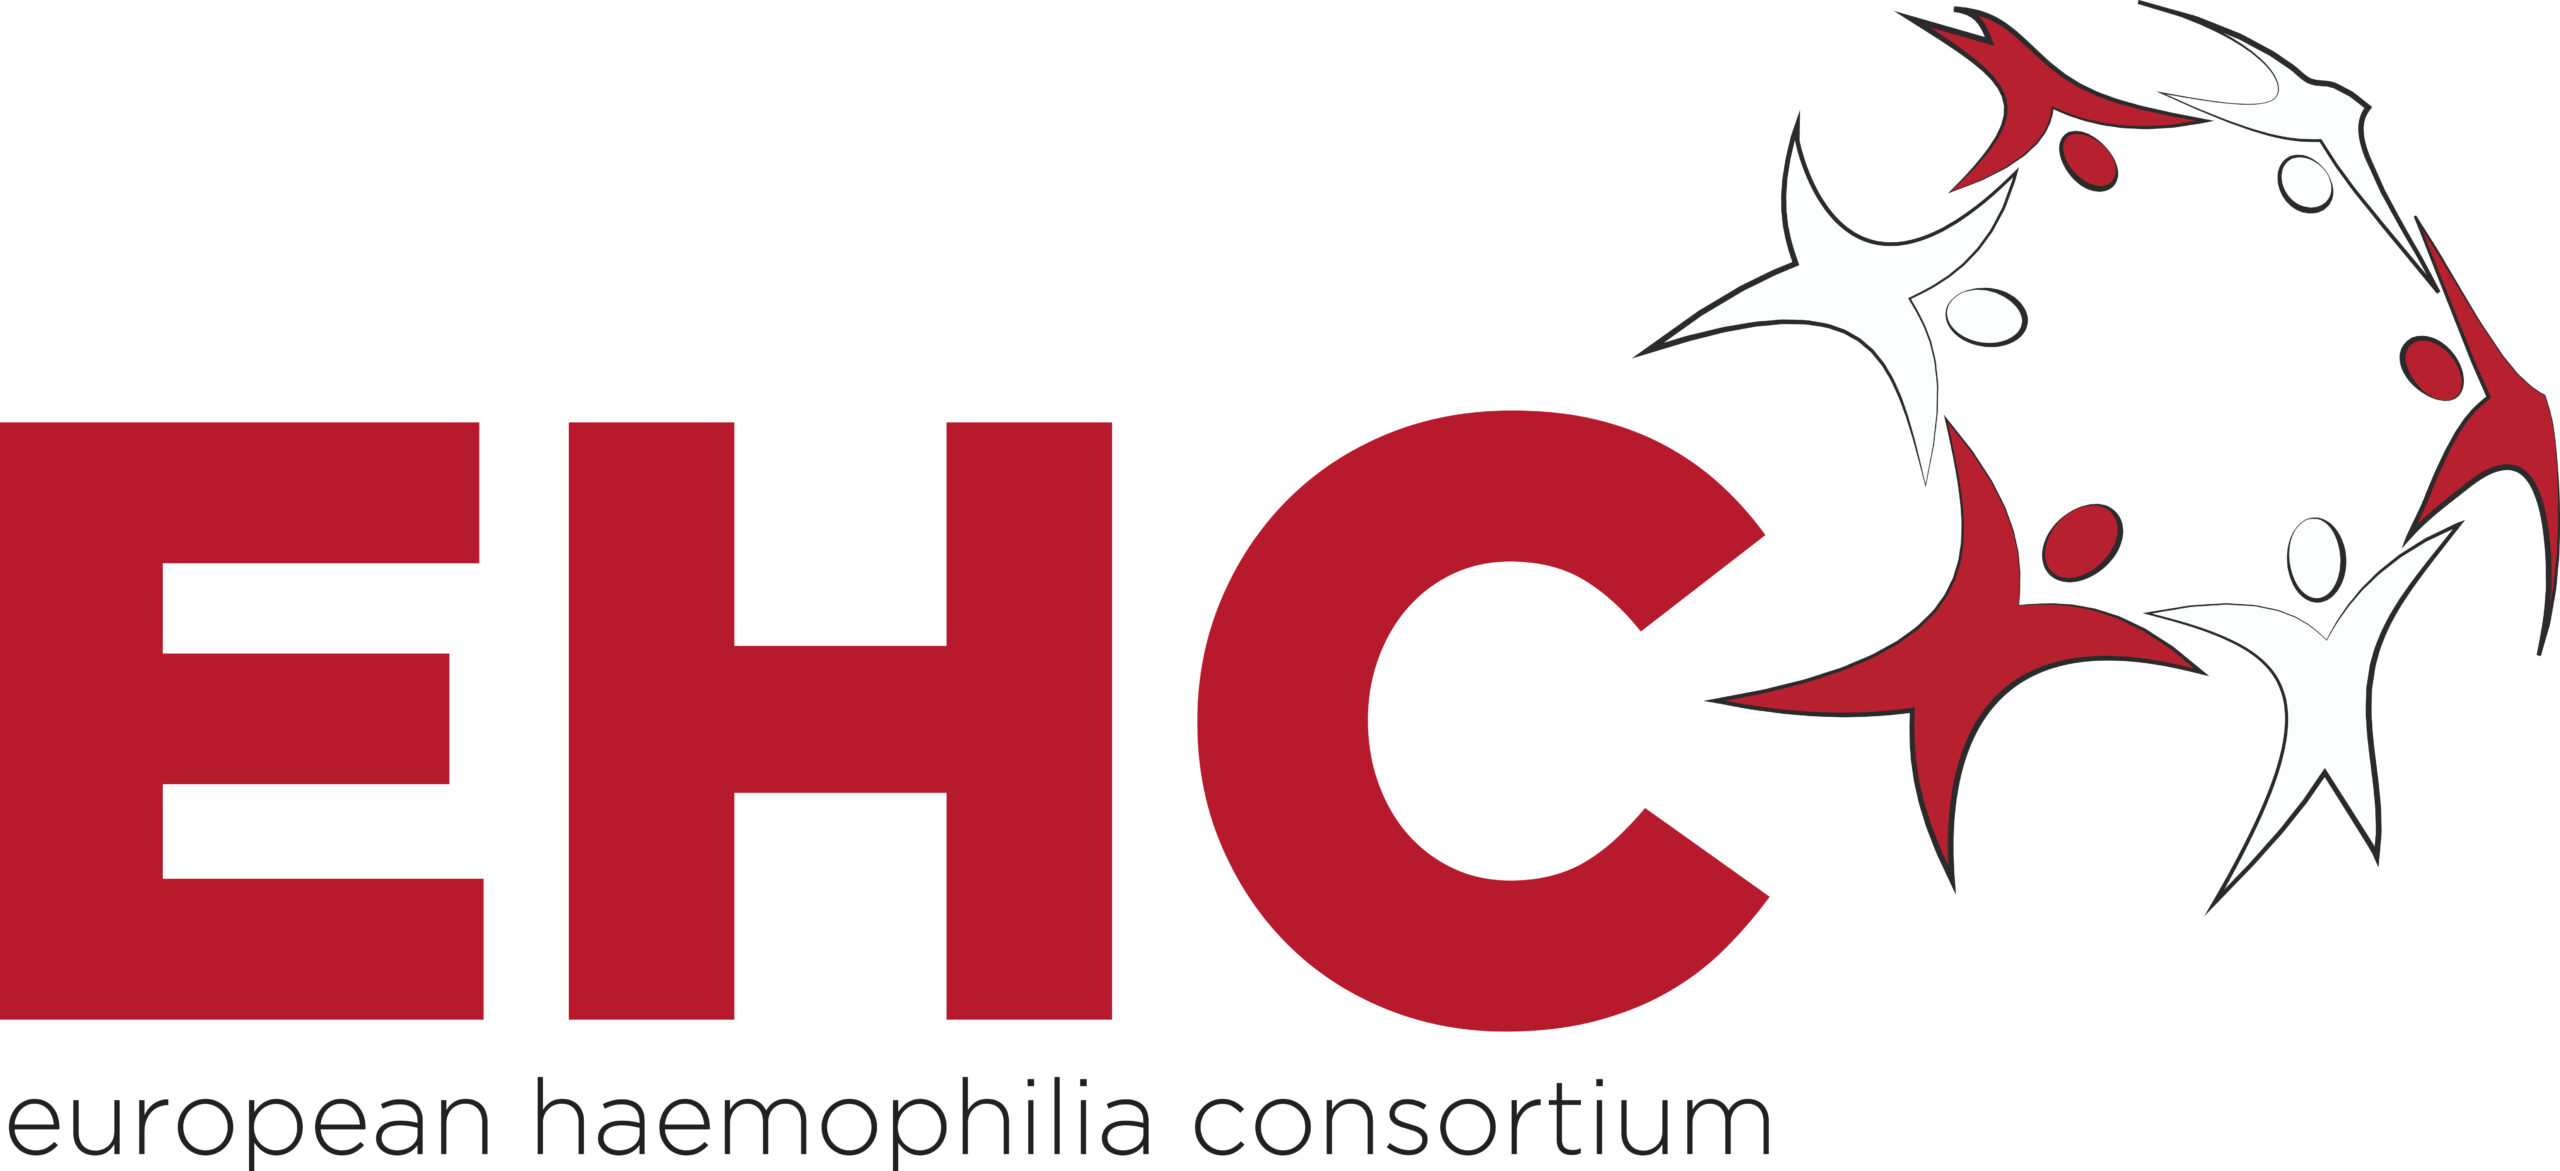 EHC – European Haemophilia Consortium -  - /ehc-unveils-findings-of-survey-on-tenders-and-procurement-during-world-haemophilia-day-event-in-dublin/